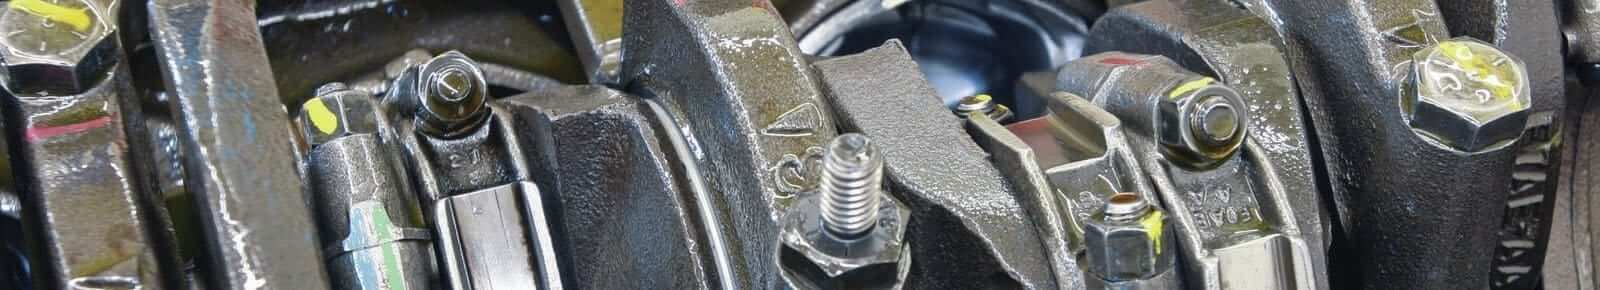 Engine replacement New Orleans - Engine Repair Services - NOLA Automotive Repairs